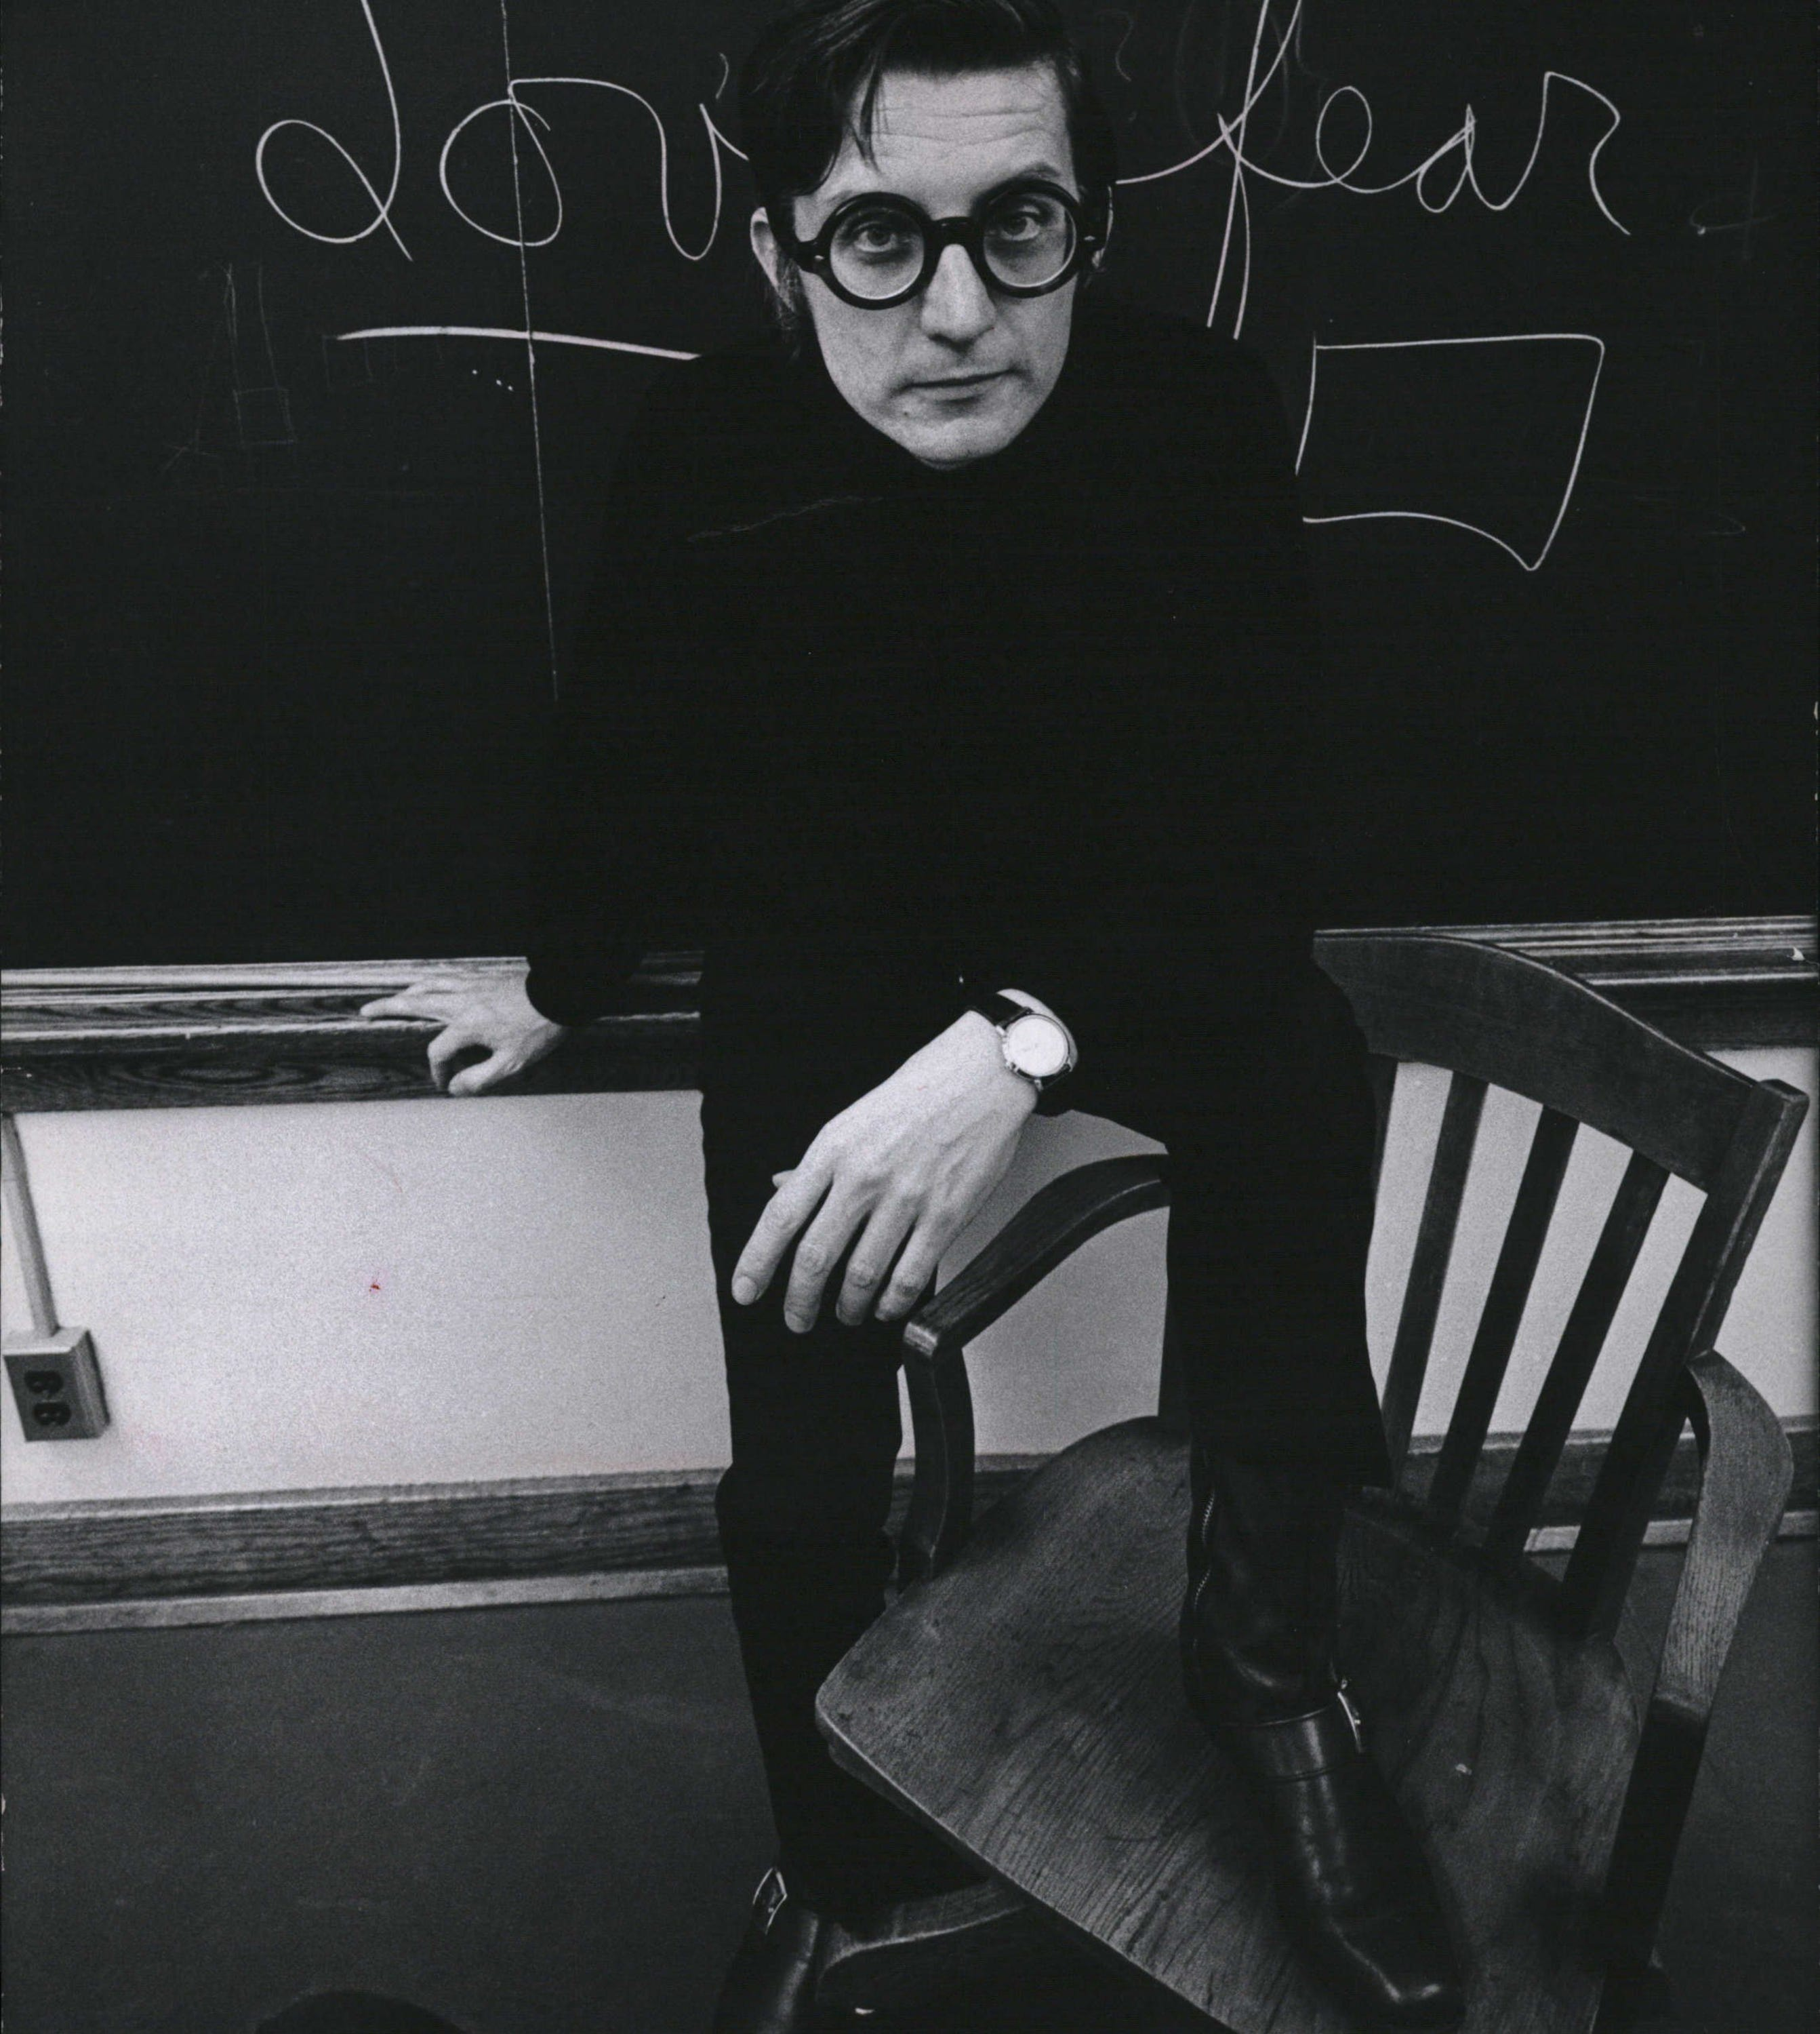 Russ Gibb poses in front of a chalkboard  in 1969.